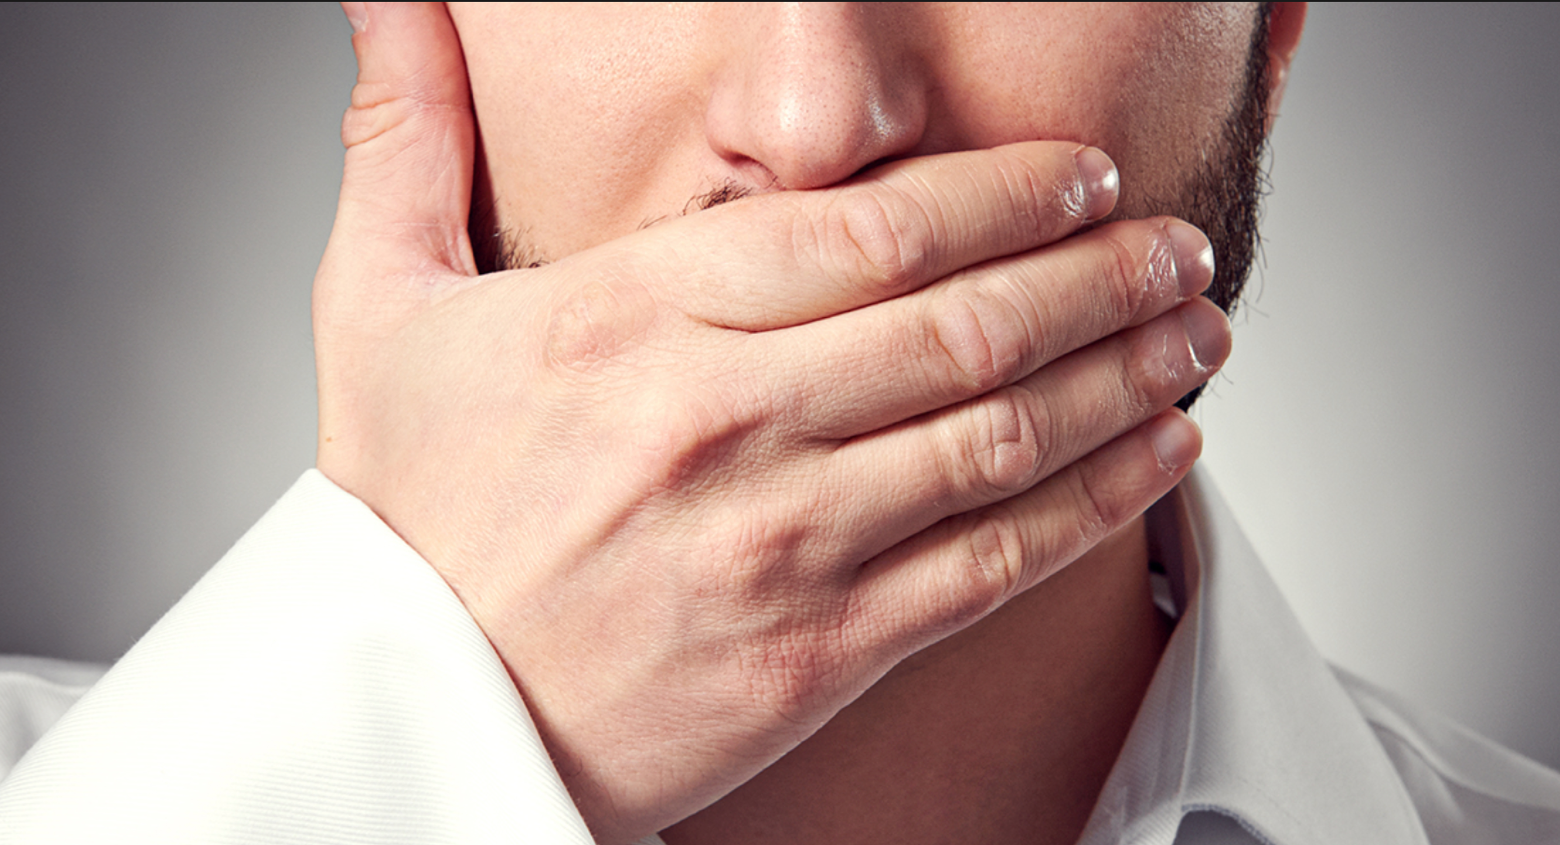 Man is holding a hand in front of his mouth to prevent from talking